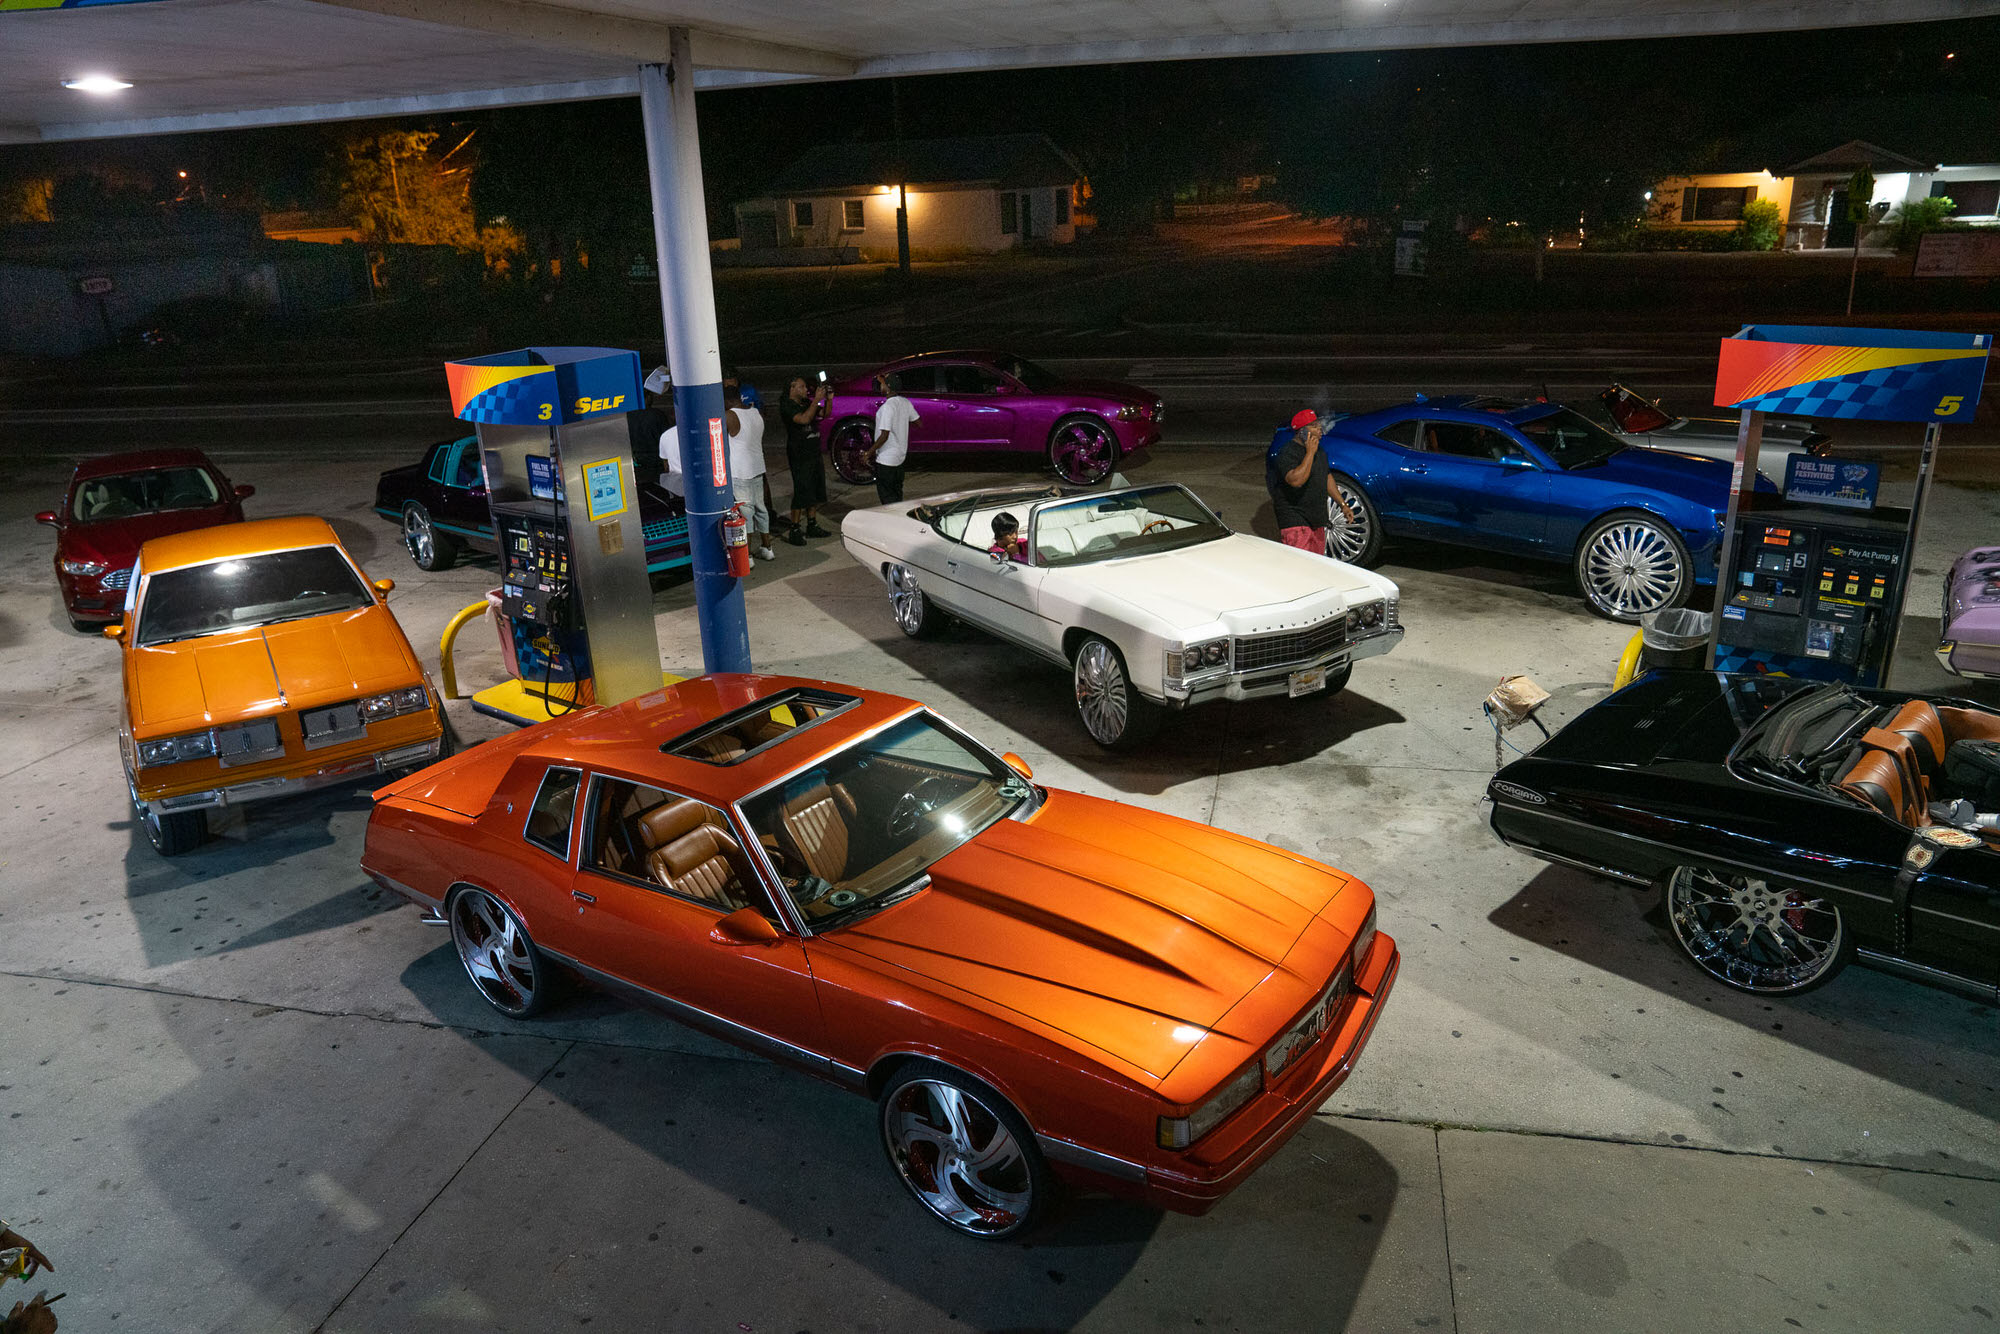 Group of DONKs at a gas station in Orlando, Florida